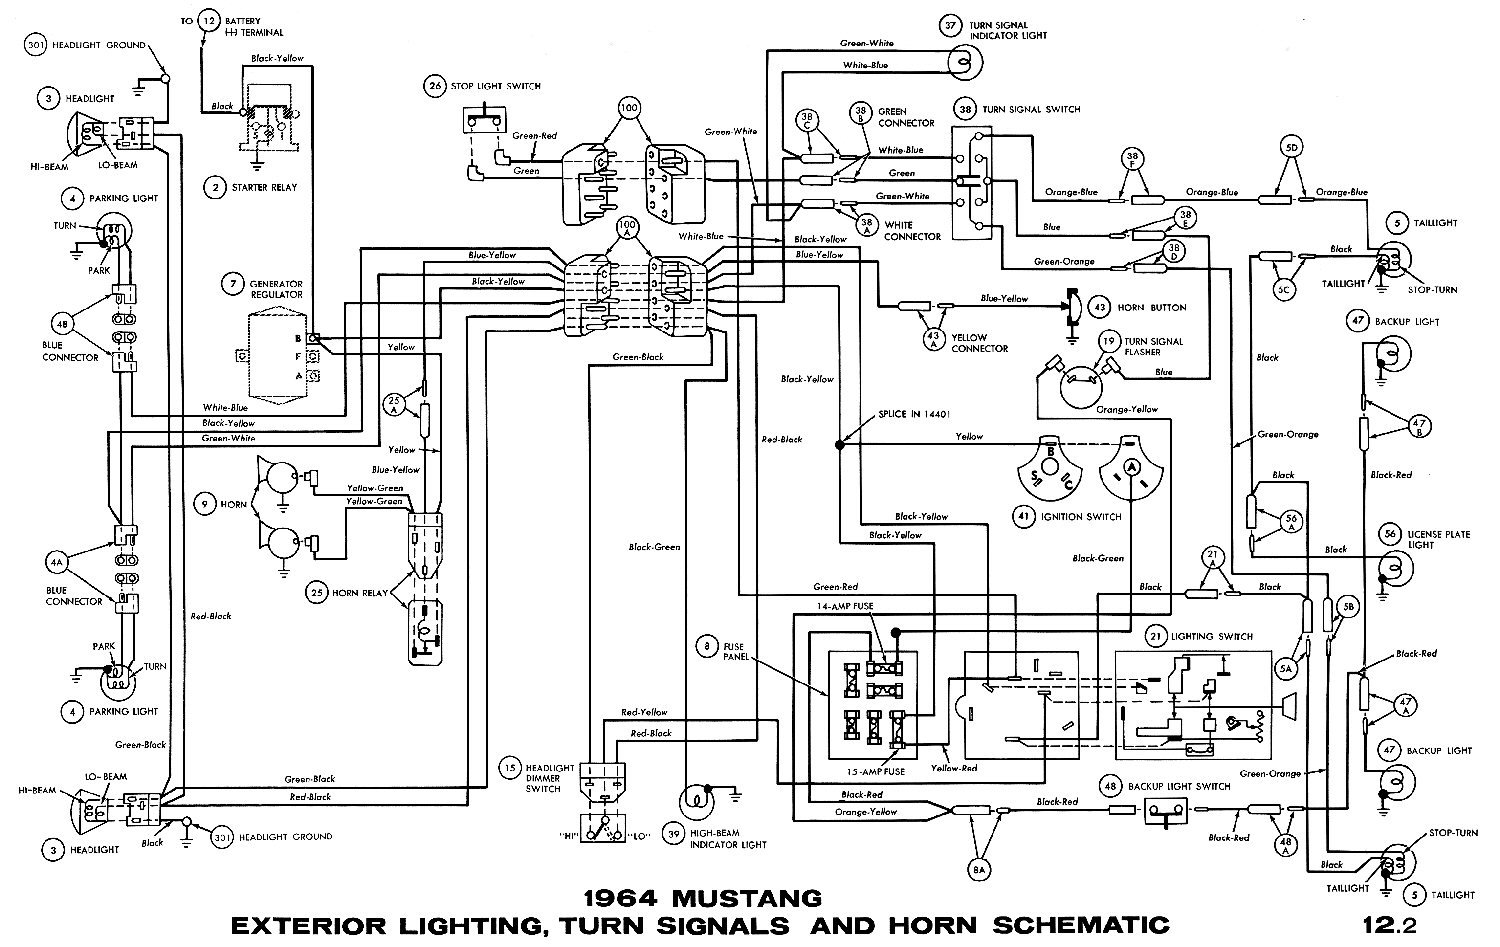 2002 mustang wiring diagram chrysler alternator wiring schematic chrysler discover your 67 mustang wiring diagram exterior